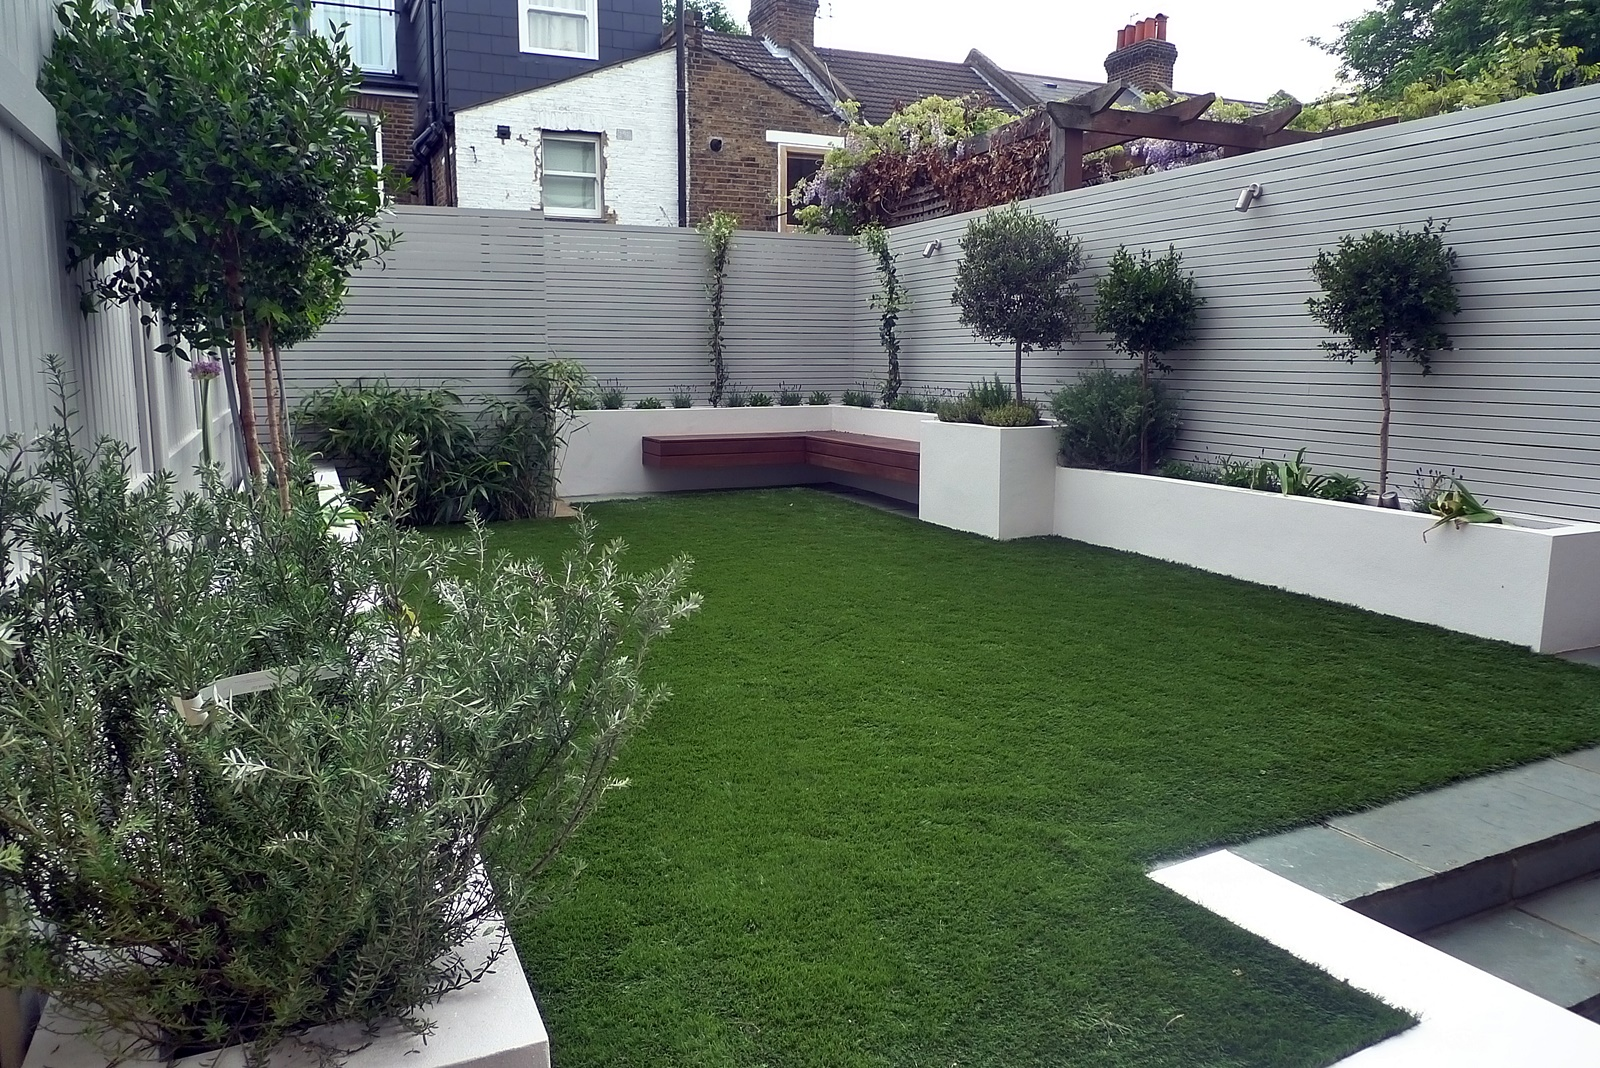 London garden blog london garden blog gardens from for Landscape design plans